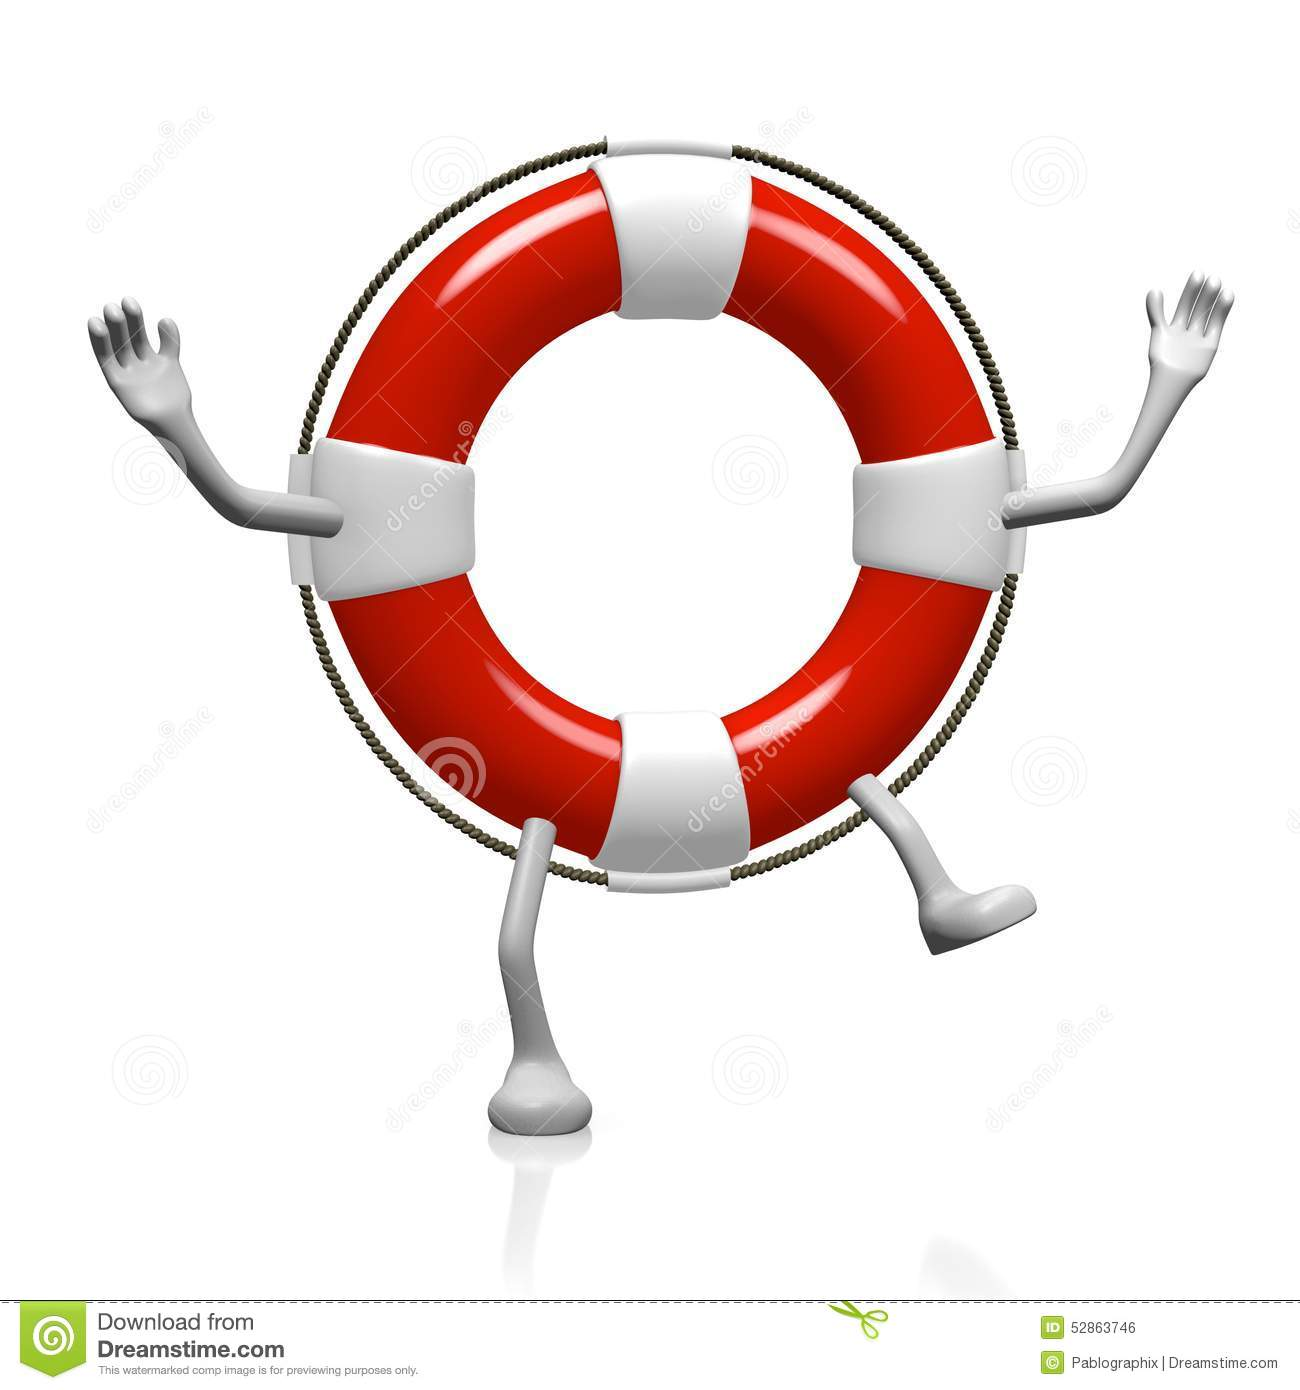 how to use a rescue buoy